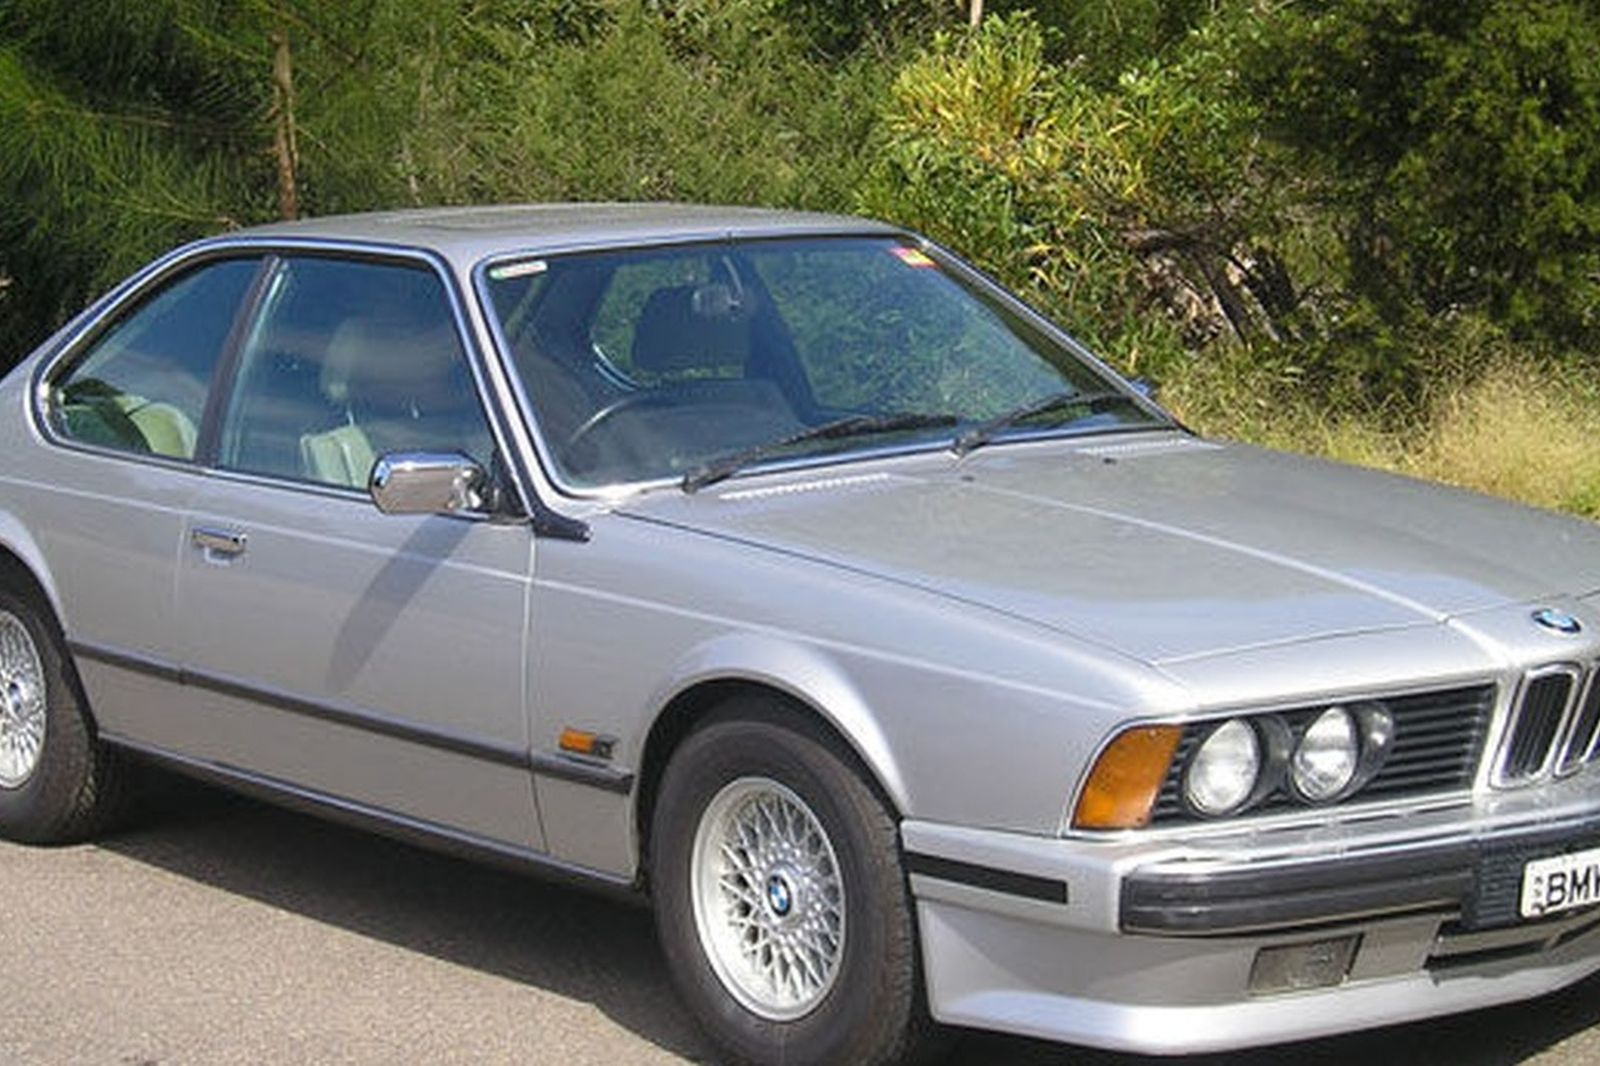 1983 bmw 635 csi coupe sold bmw 635 csi coupe auctions lot 26 shannons E24 633CSi at webbmarketing.co